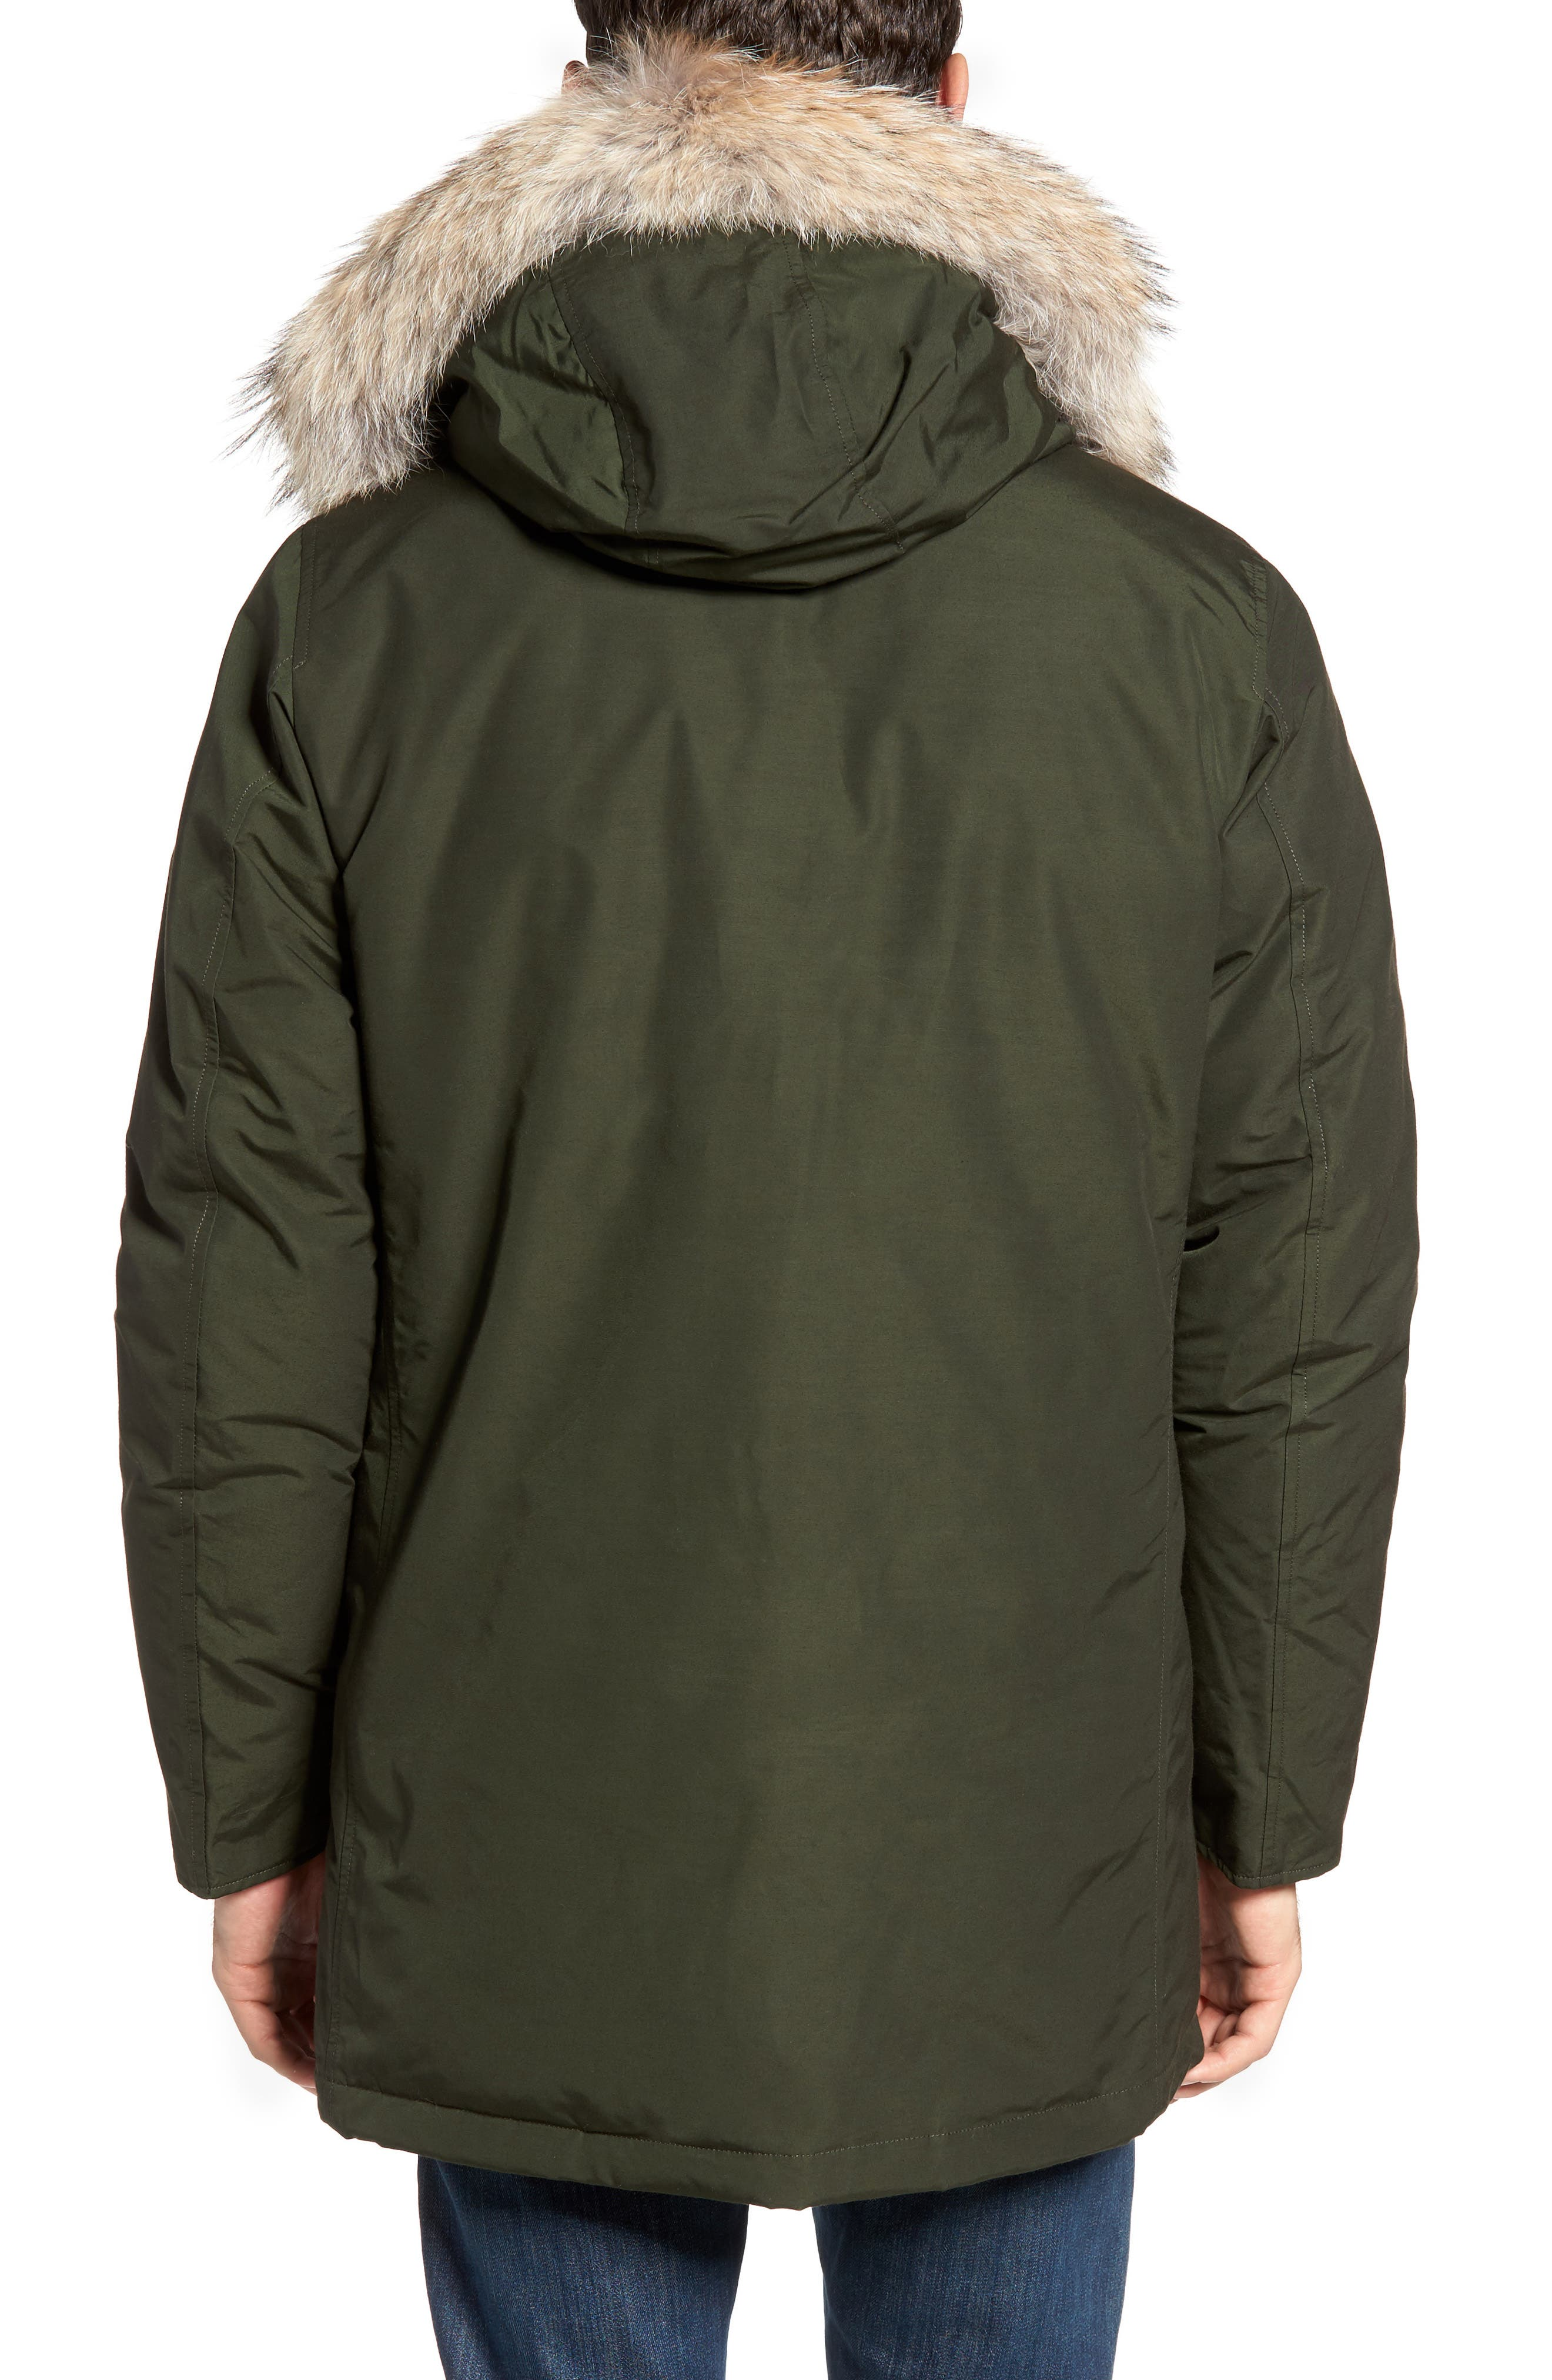 John Rich & Bros. Arctic Parka with Genuine Coyote Fur Trim,                             Alternate thumbnail 14, color,